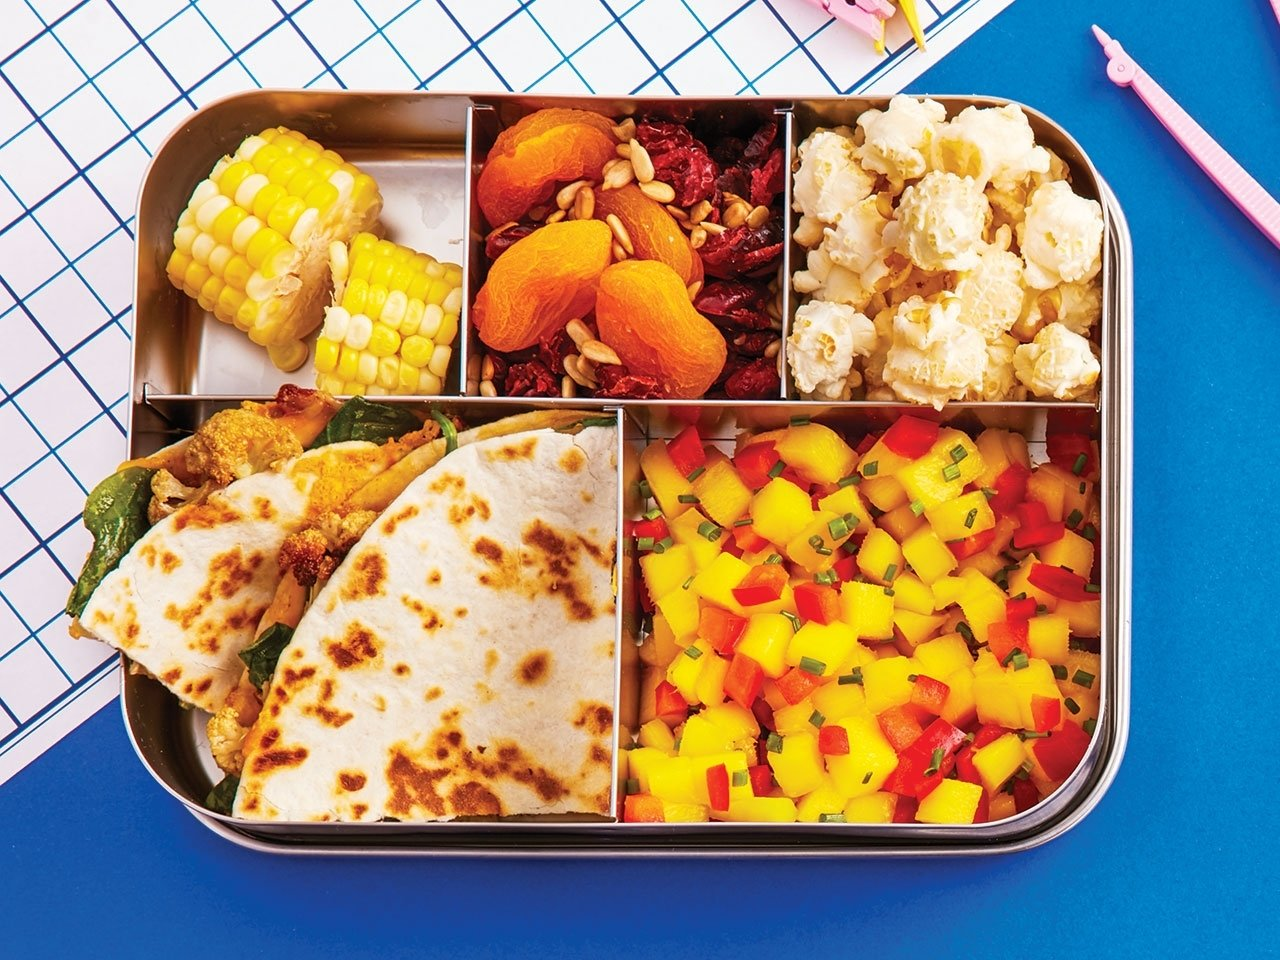 10 Fashionable Bento Box Ideas For Kids 10 bento box lunch ideas your kids will love todays parent 1 2020